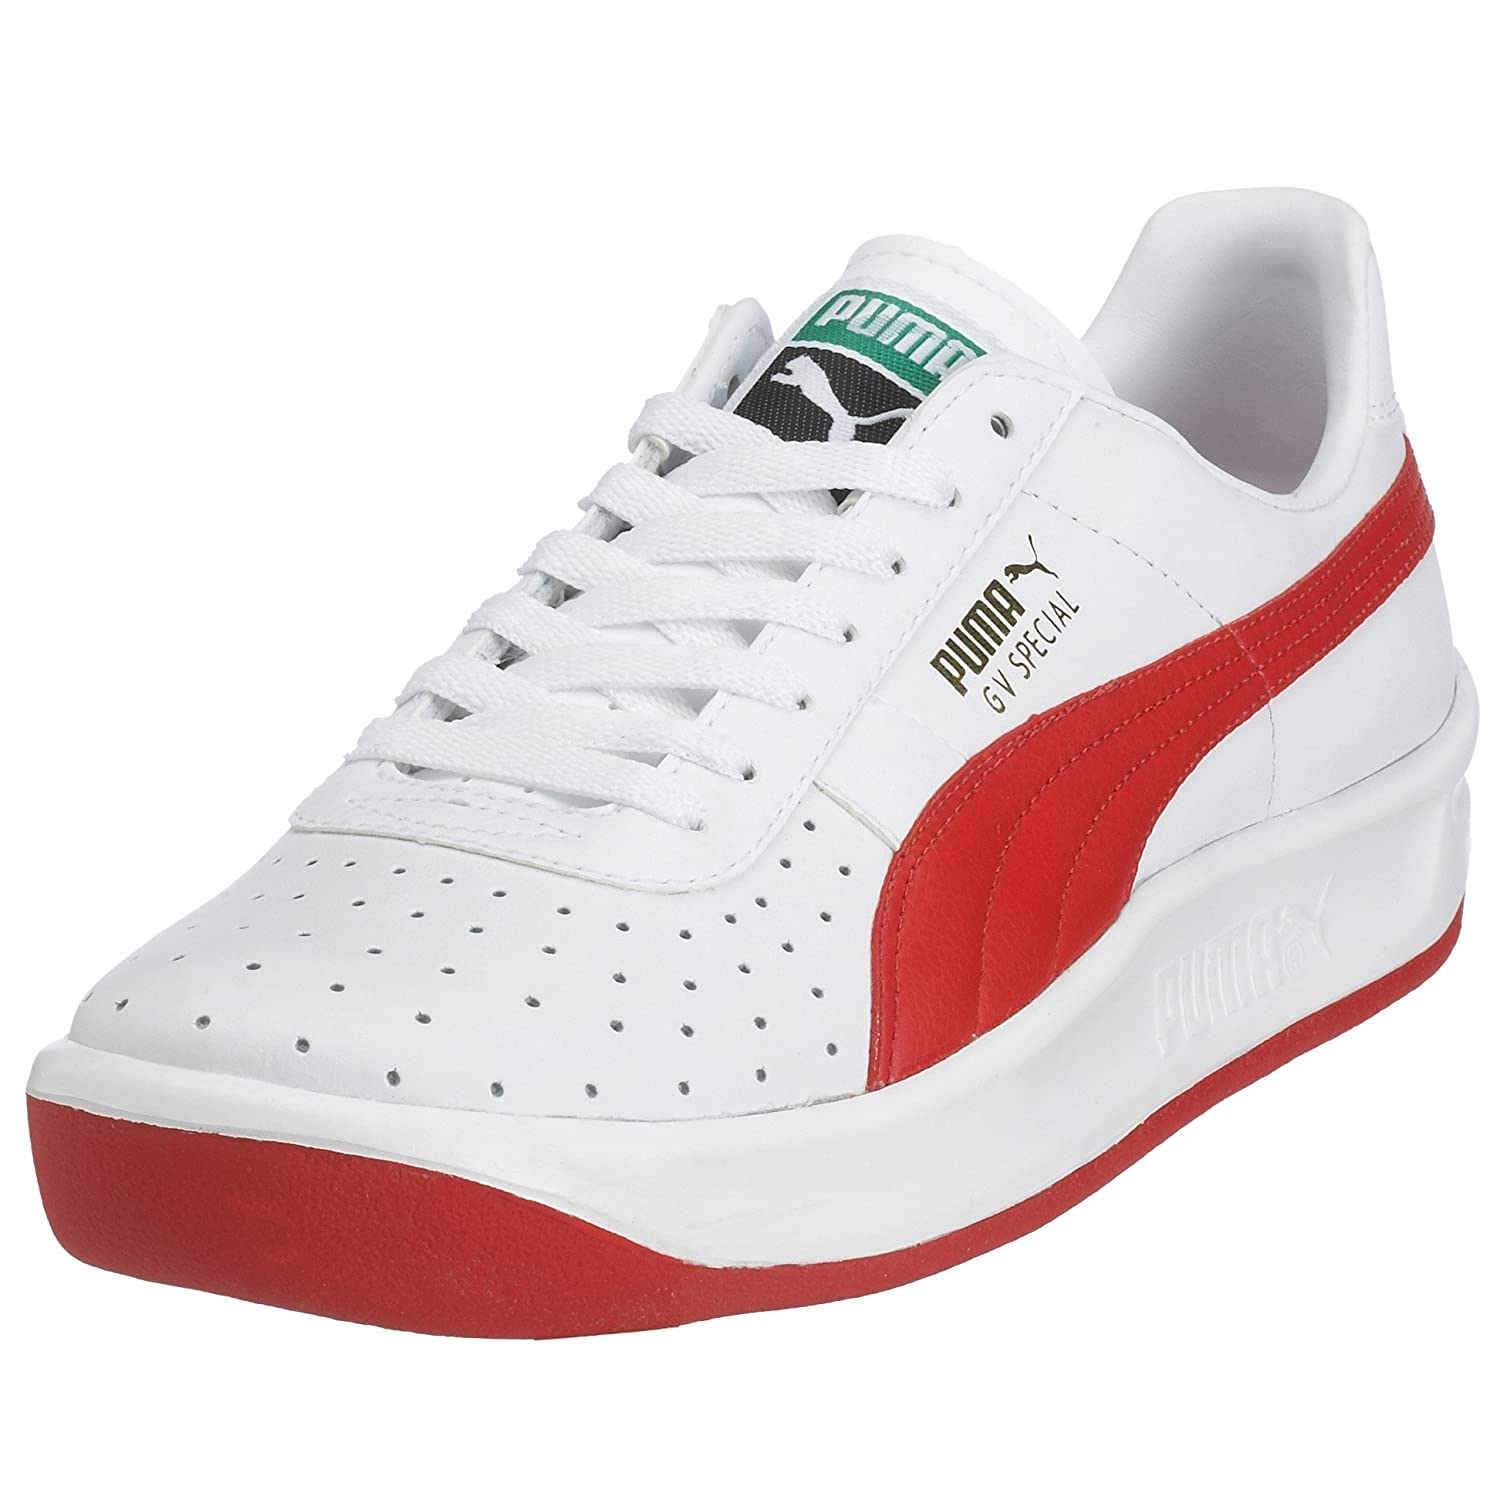 7c0abf31ad74 ... RedBlack) VILLA Puma GV Special White 343569-08 5.5 Amazon.co.uk Shoes  Bags ...